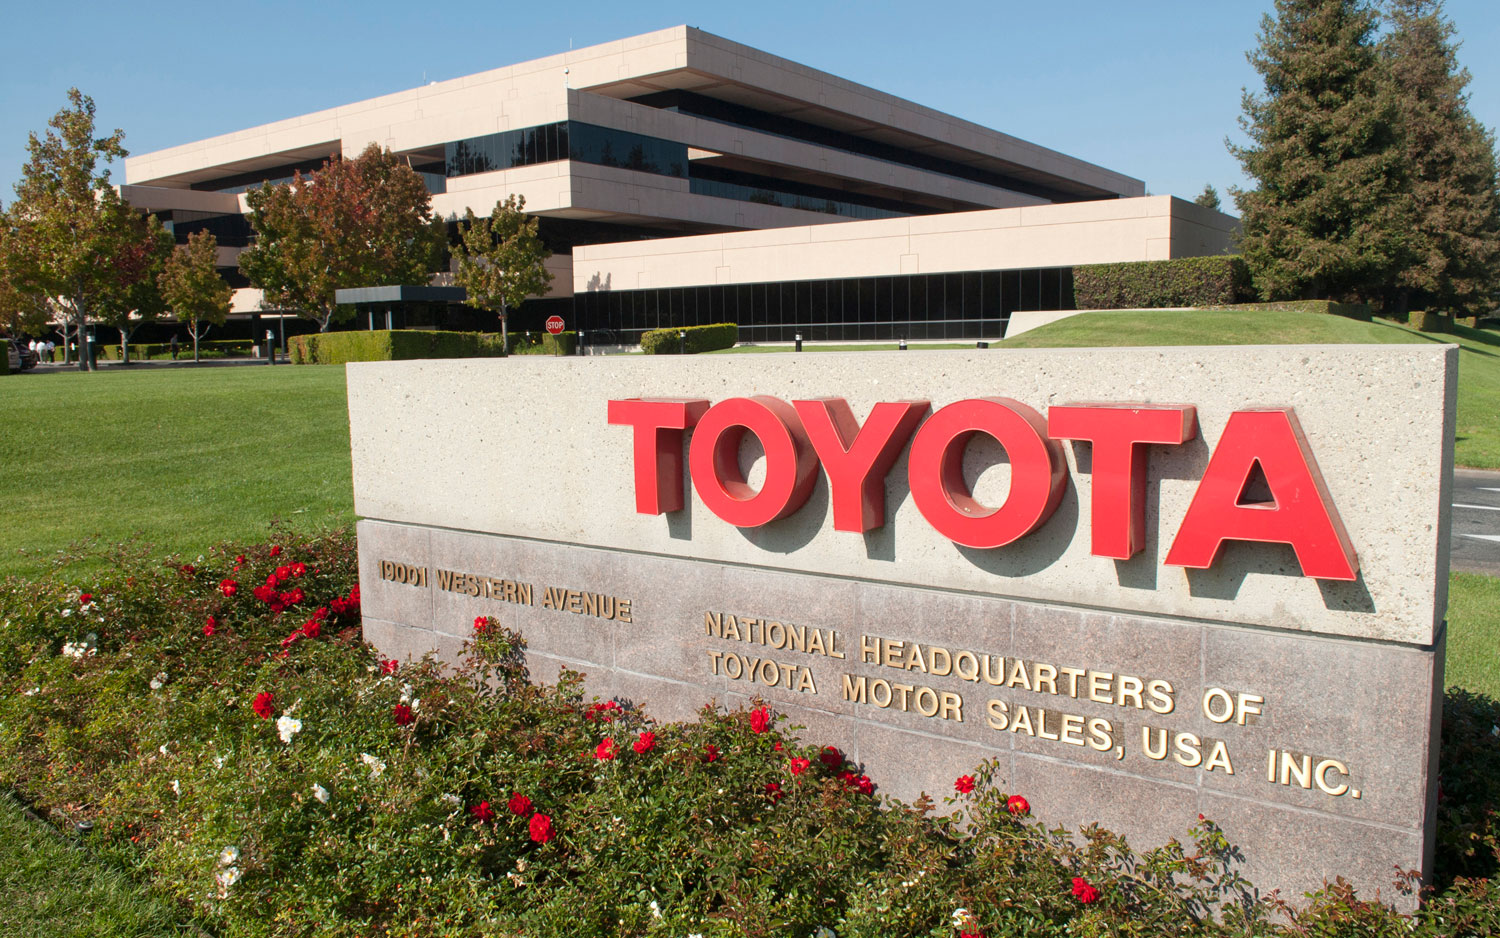 1 2 Toyota Headquarters Torrance California 21